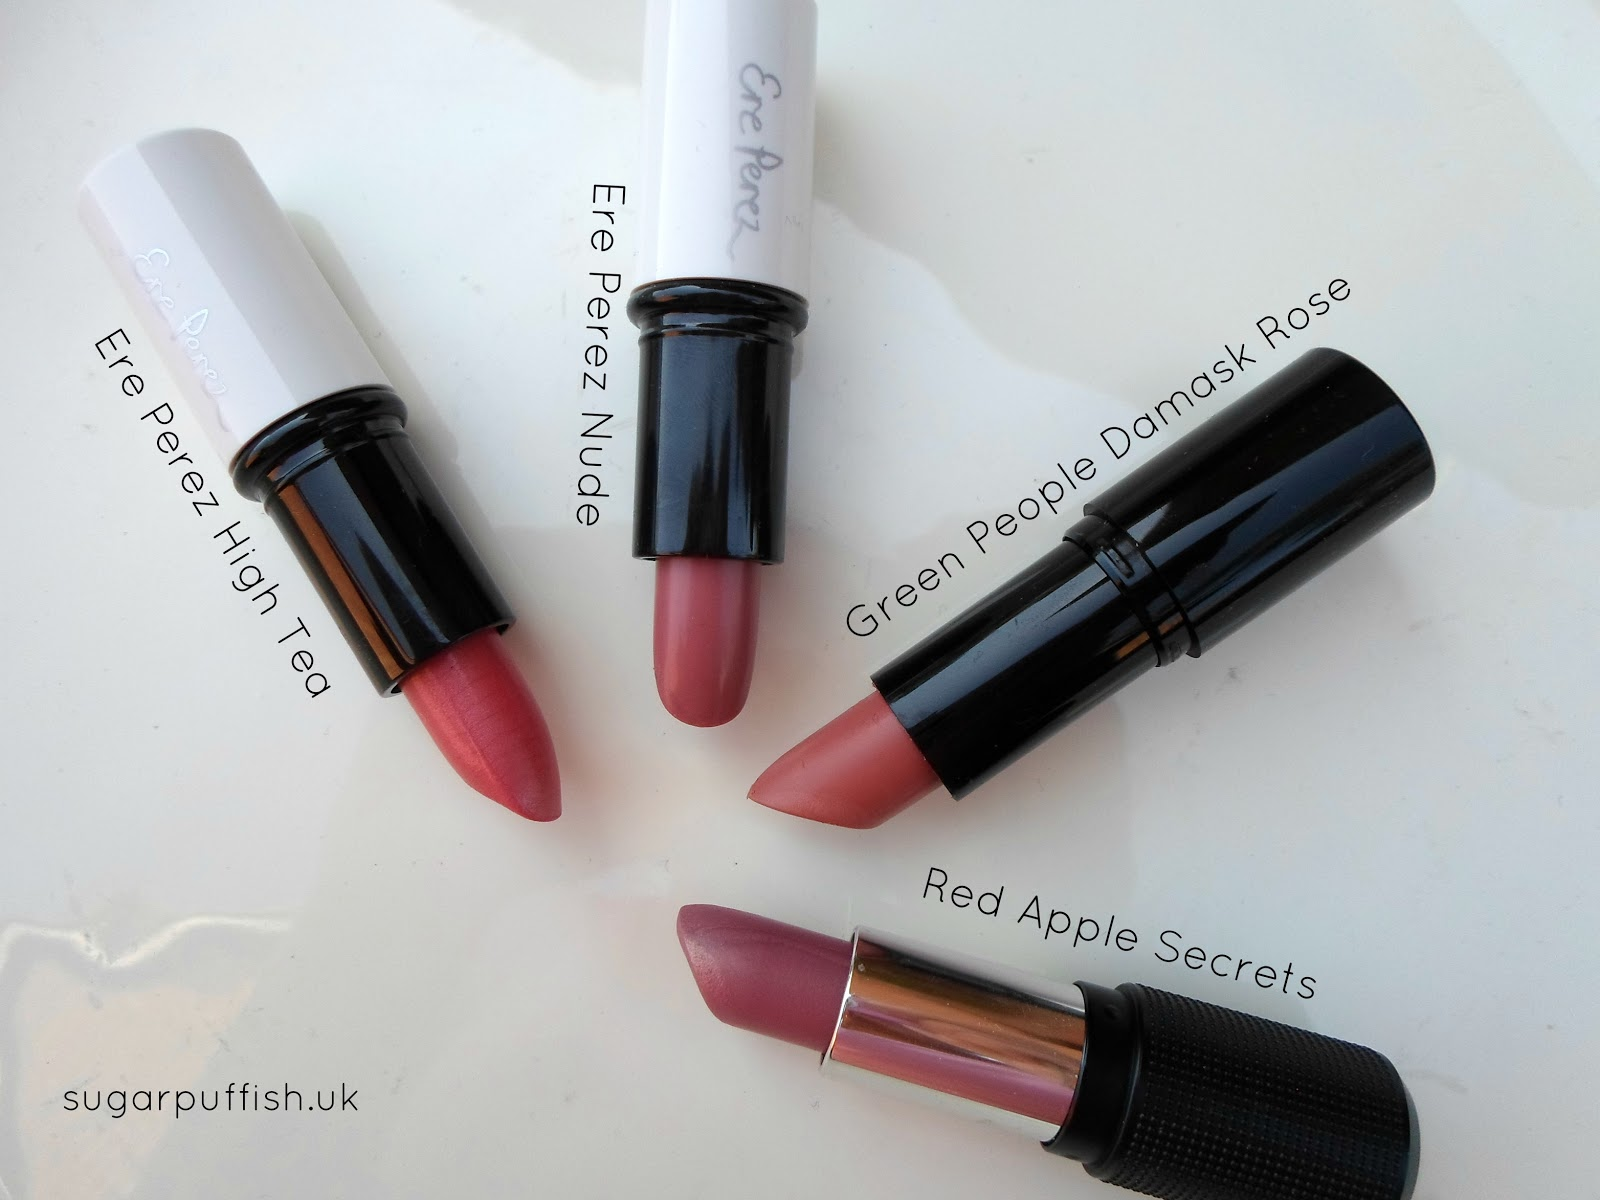 Natural Cosmetics Green Beauty Makeup Lipsticks Ere Perez Green People Red Apple